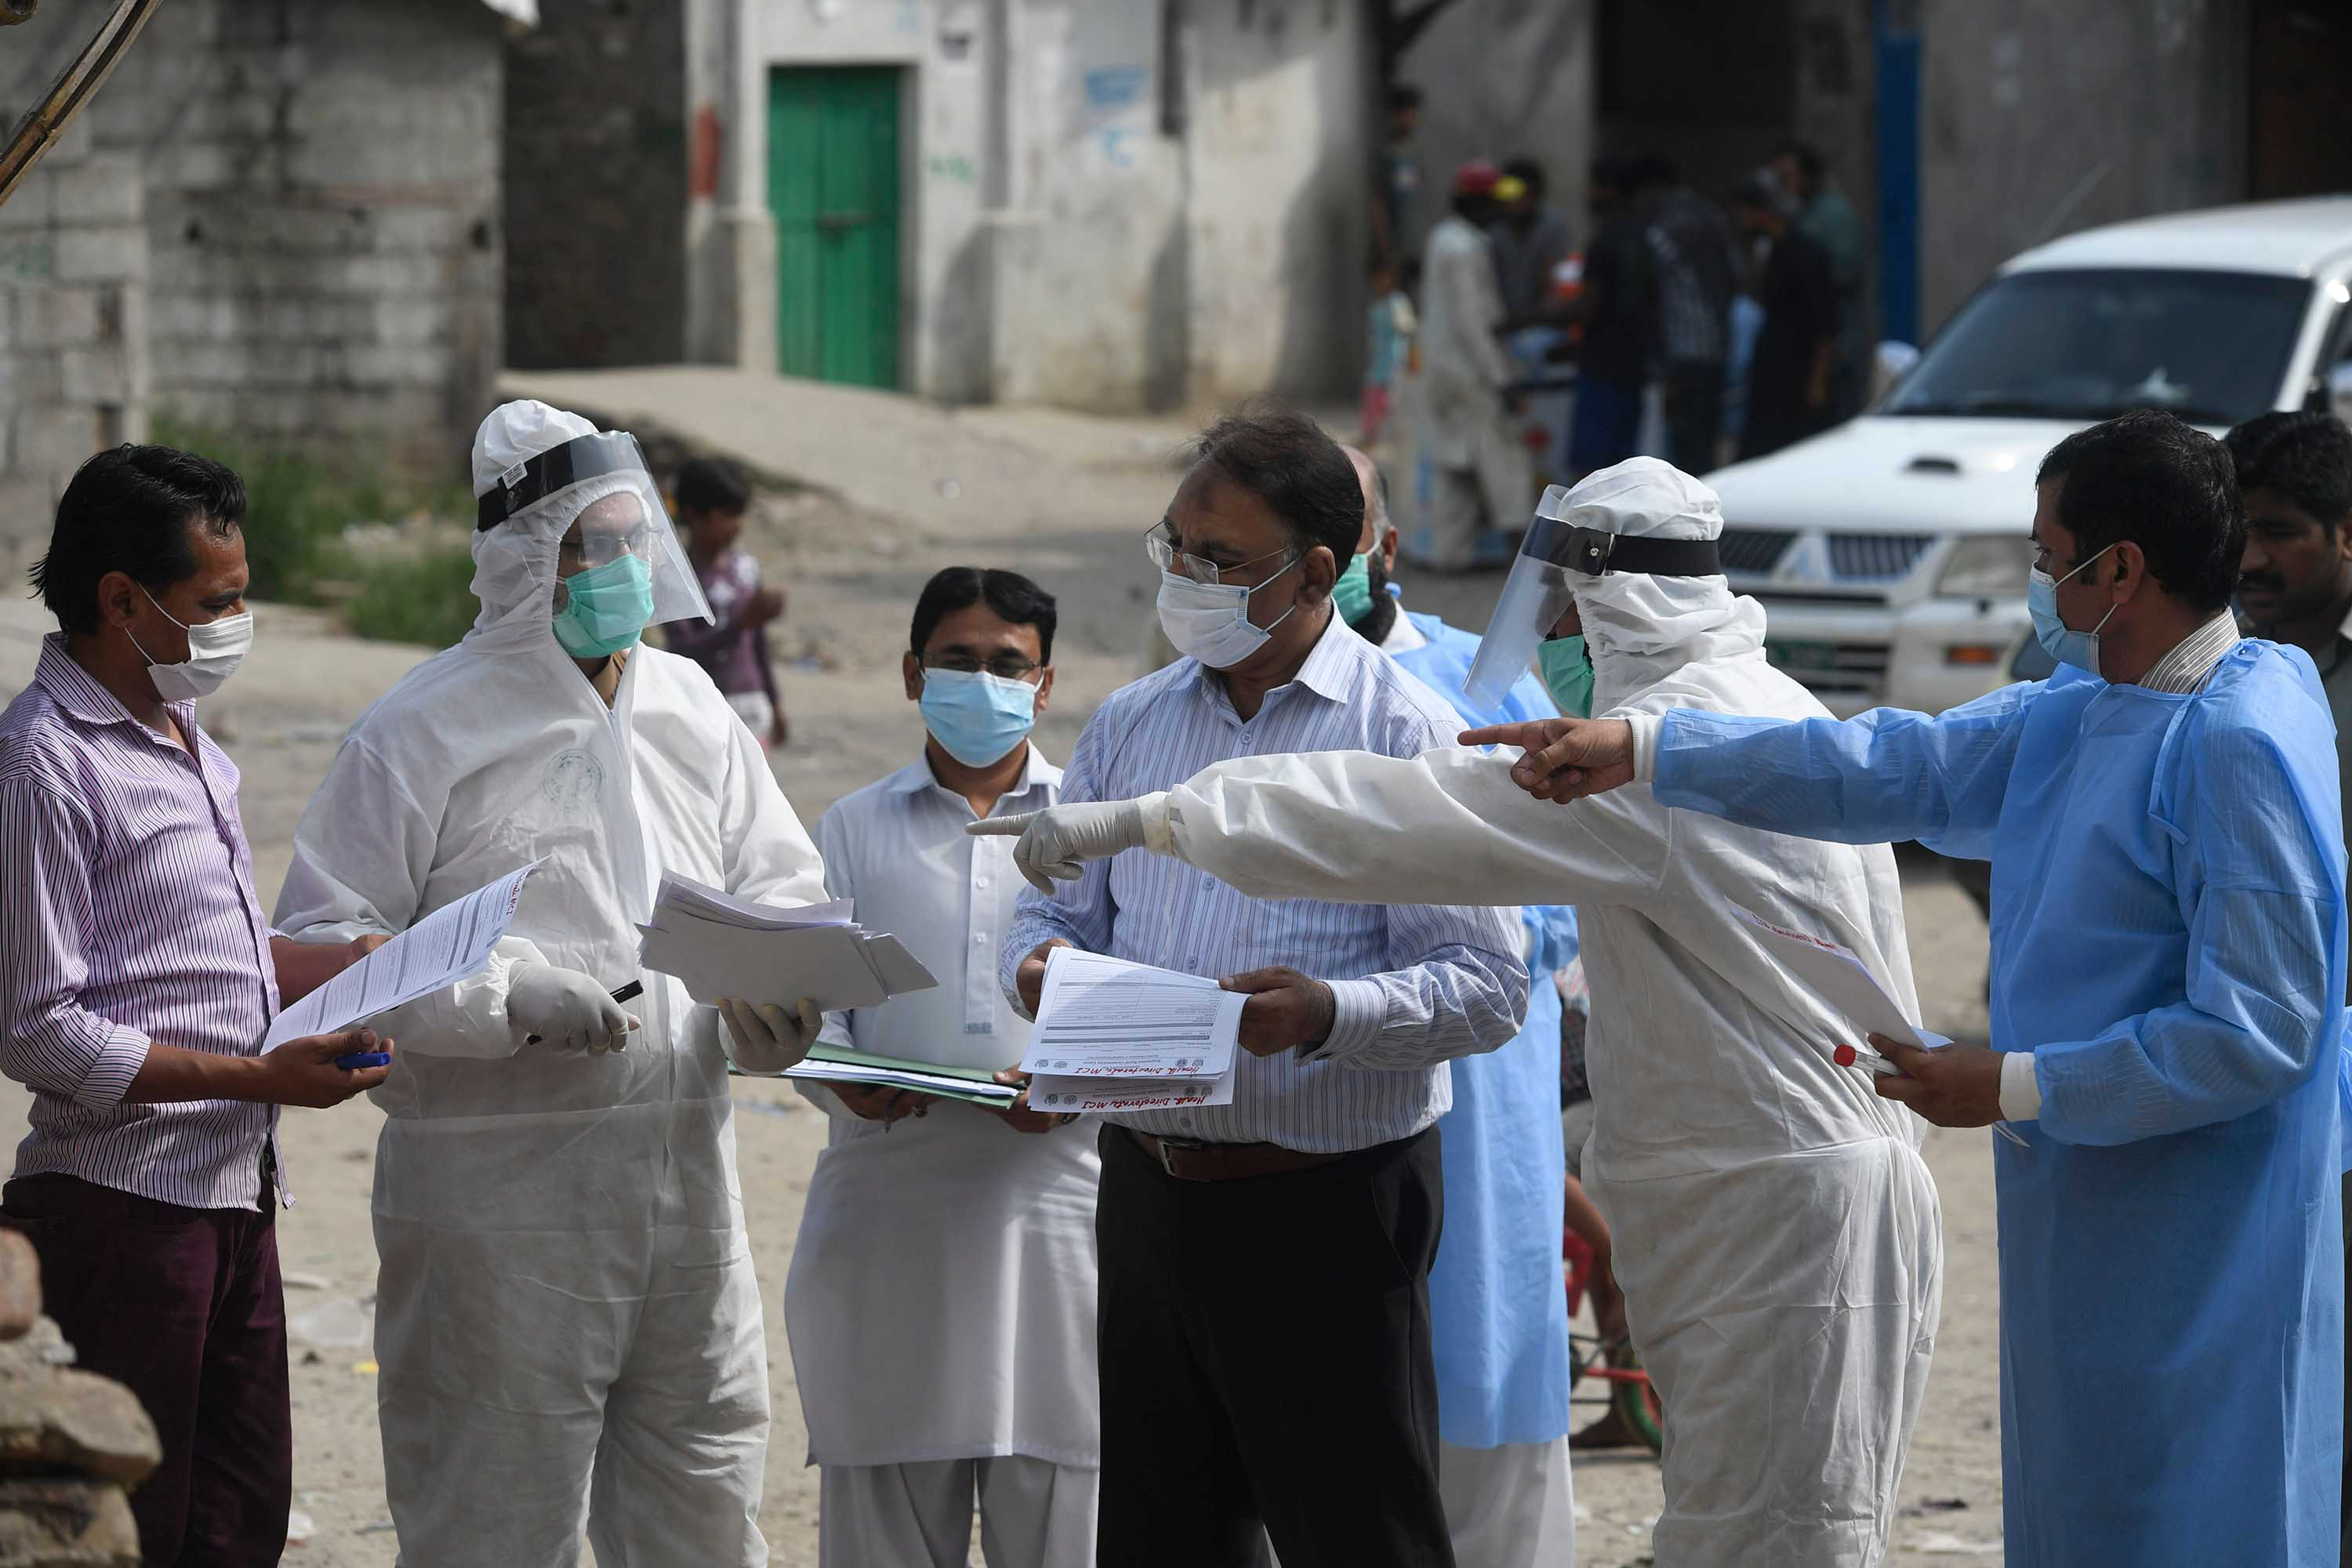 Health officials hold medical records after collecting samples from residents during a door-to-door screening and testing operation at a slum area in Islamabad, Pakistan, on June 30.